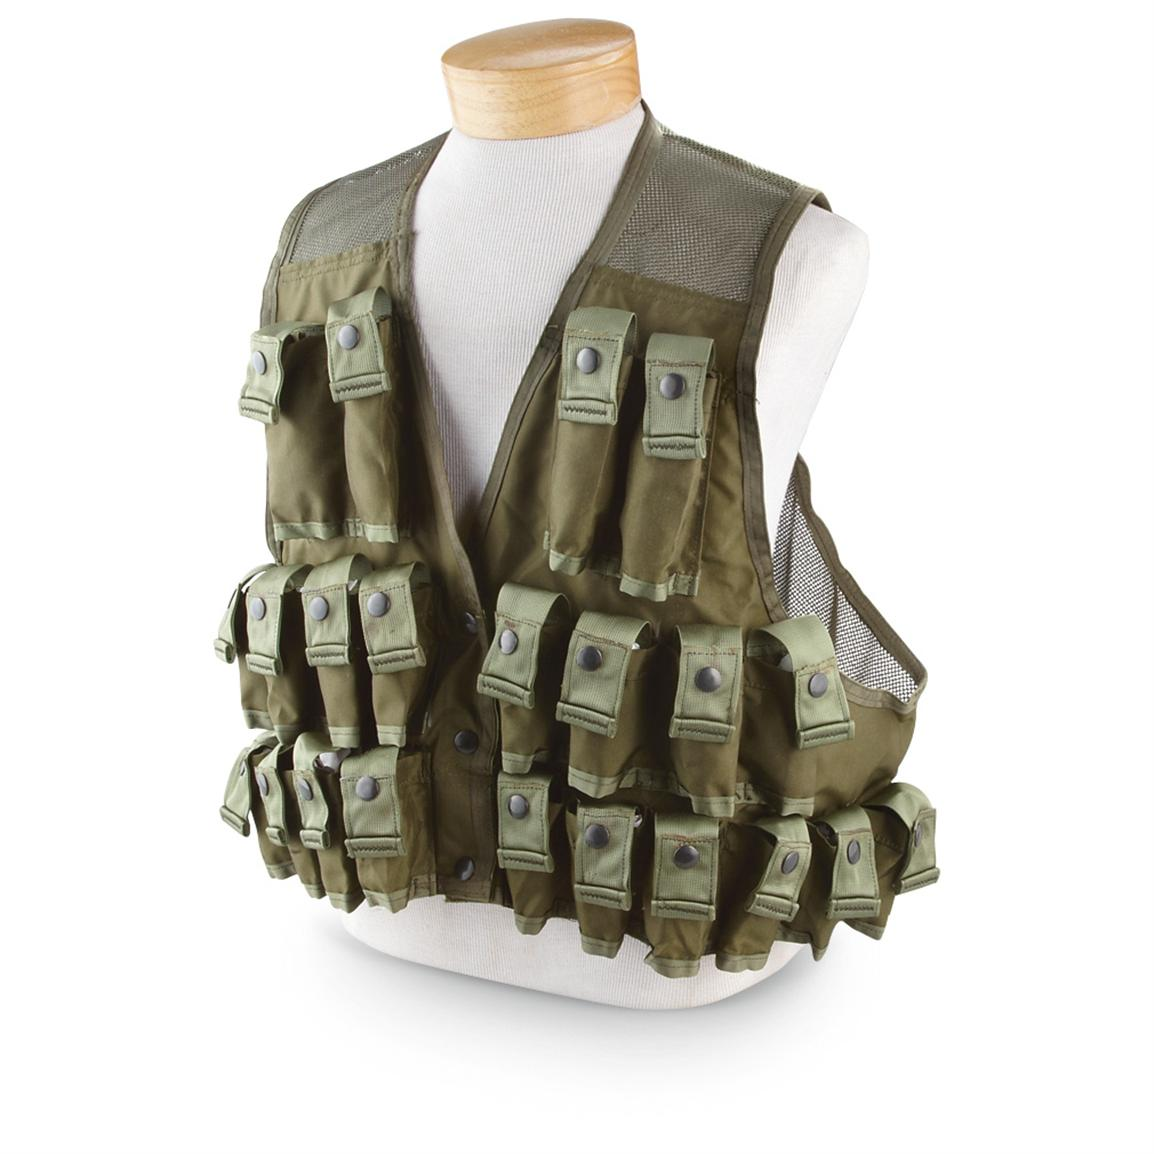 New U.S. Military Surplus Ammo Carrying Vest, Olive Drab